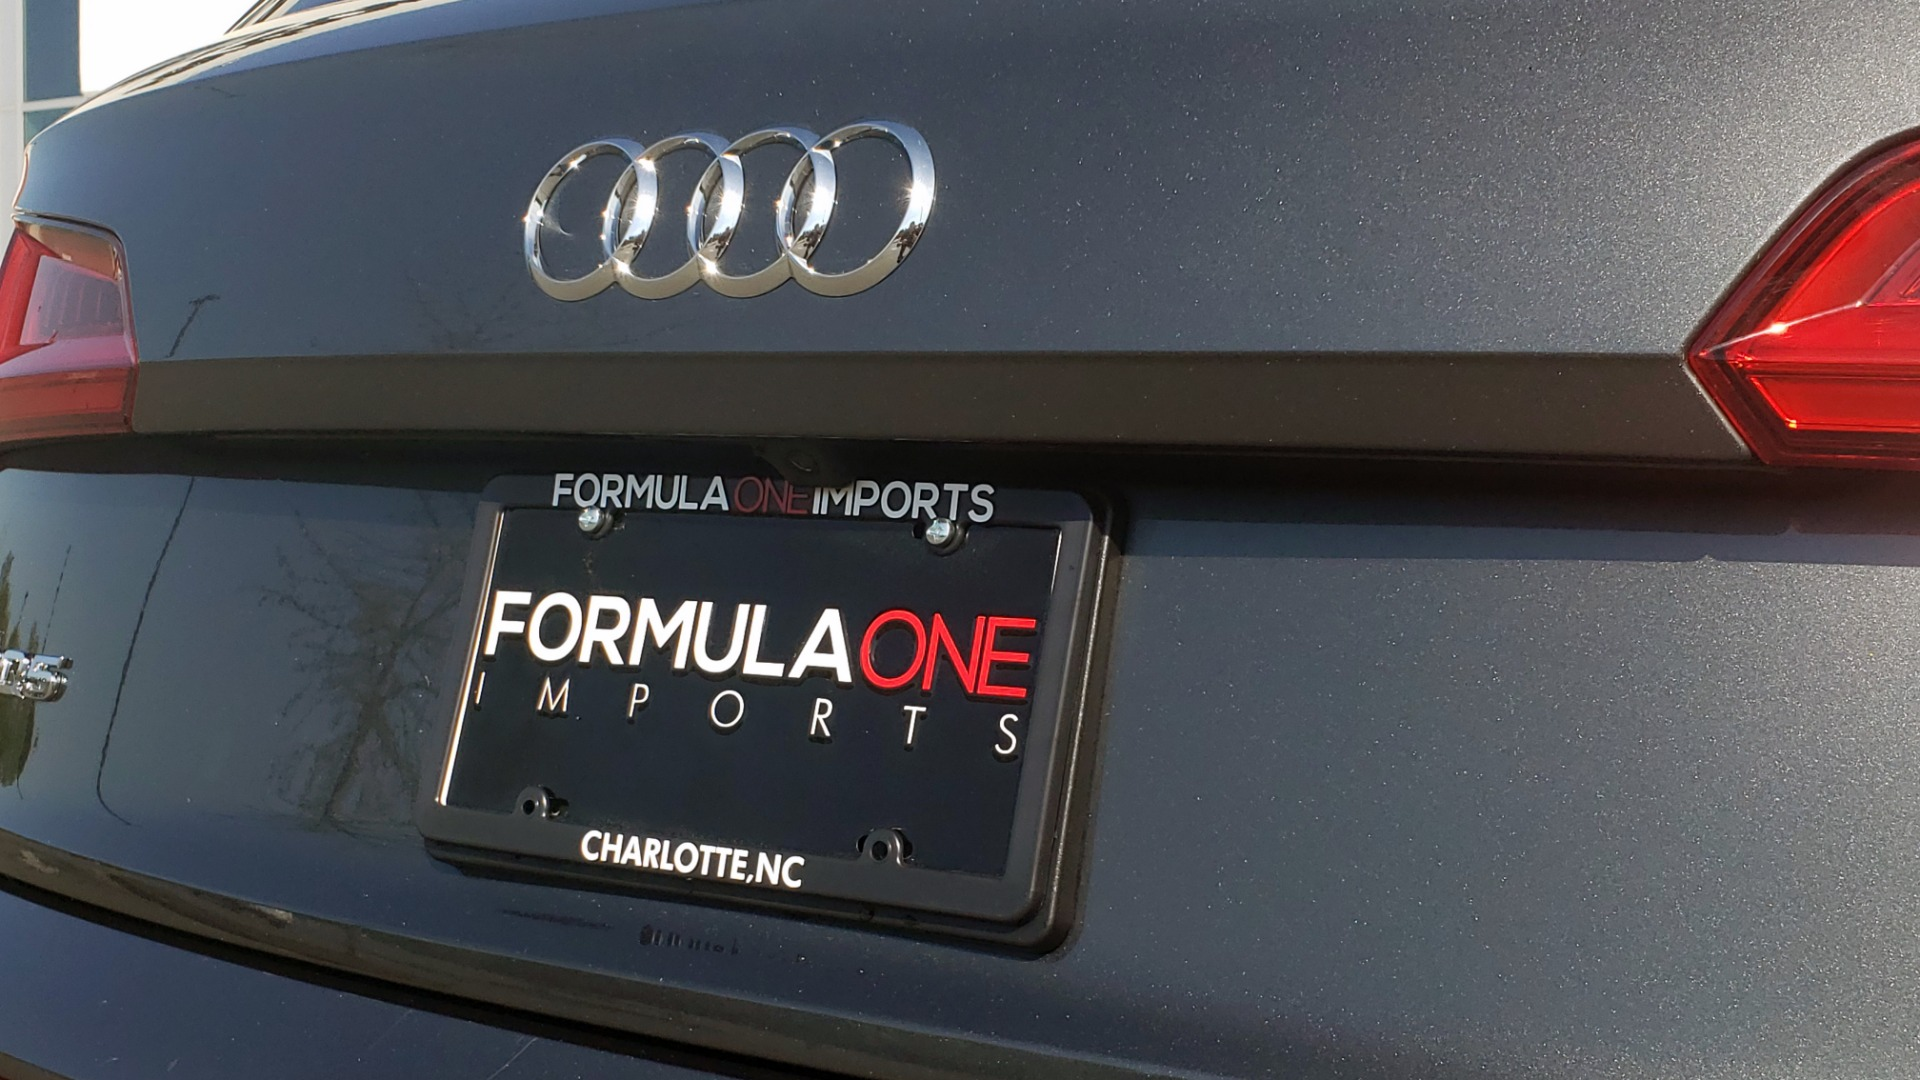 Used 2018 Audi SQ5 PREMIUM PLUS SPORT / NAV / B&O SND / SUNROOF / REARVIEW for sale Sold at Formula Imports in Charlotte NC 28227 28